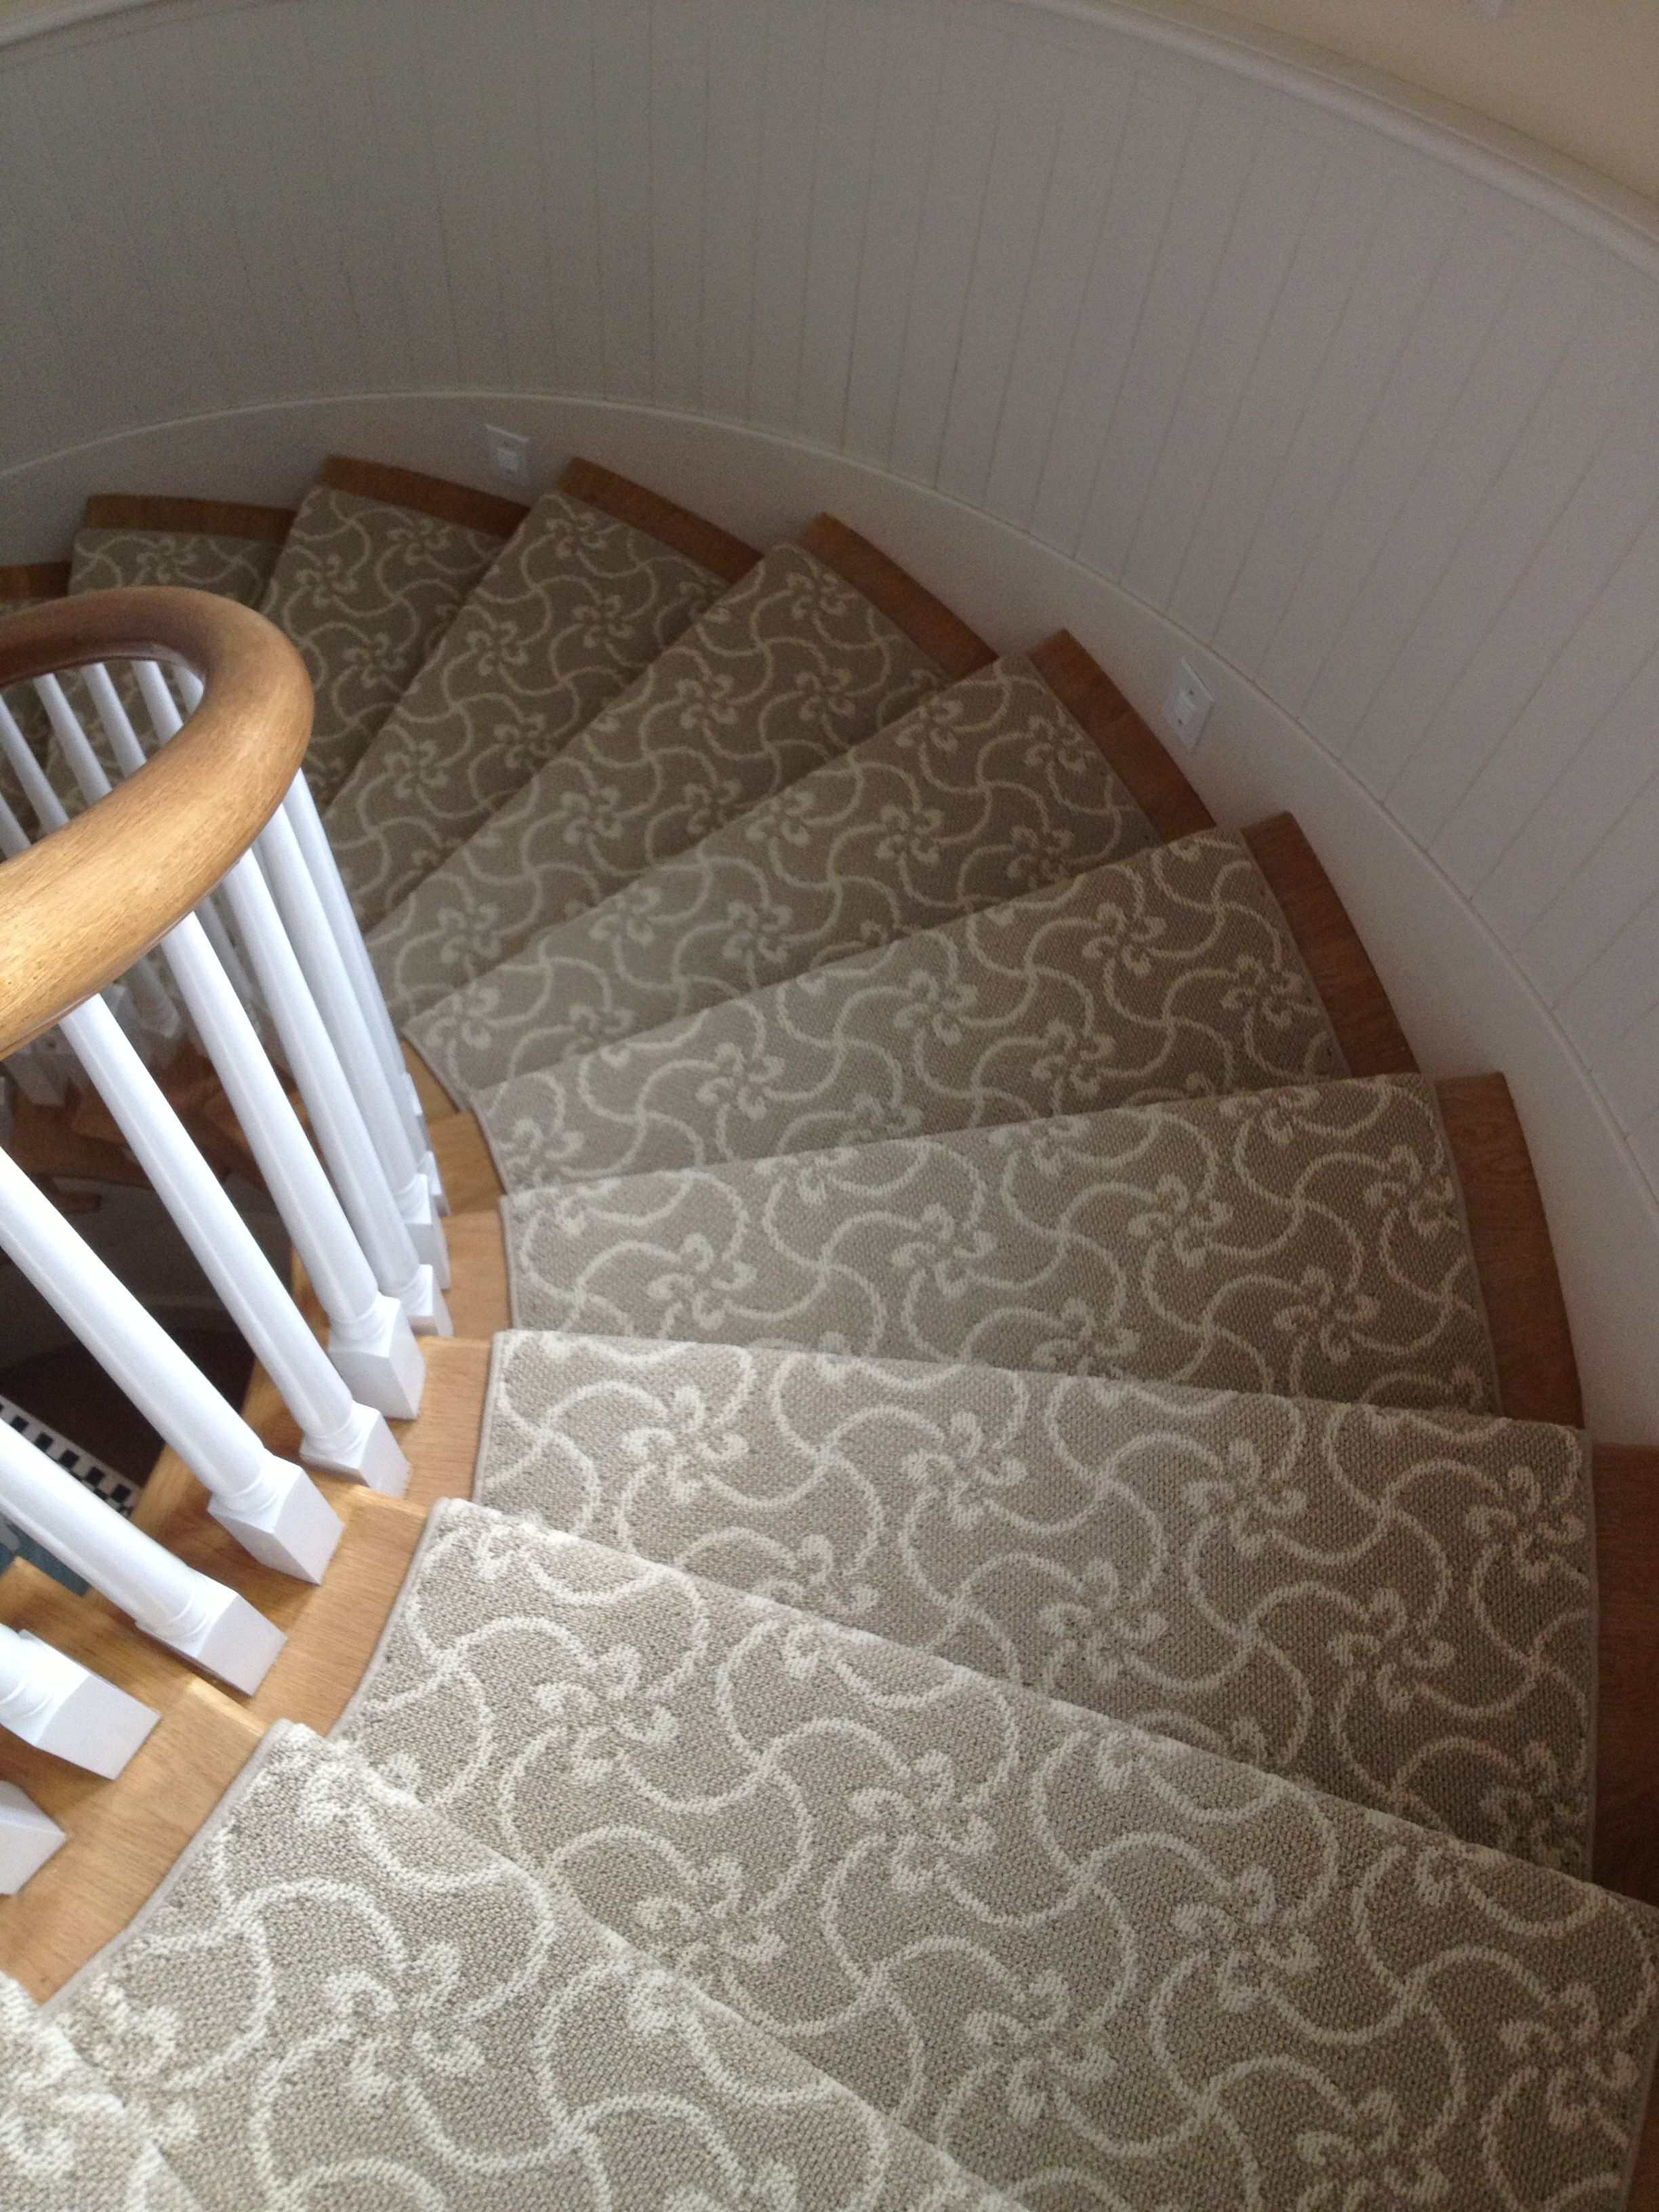 Best Carpet For Stairs And Landing - Carpet stair runners